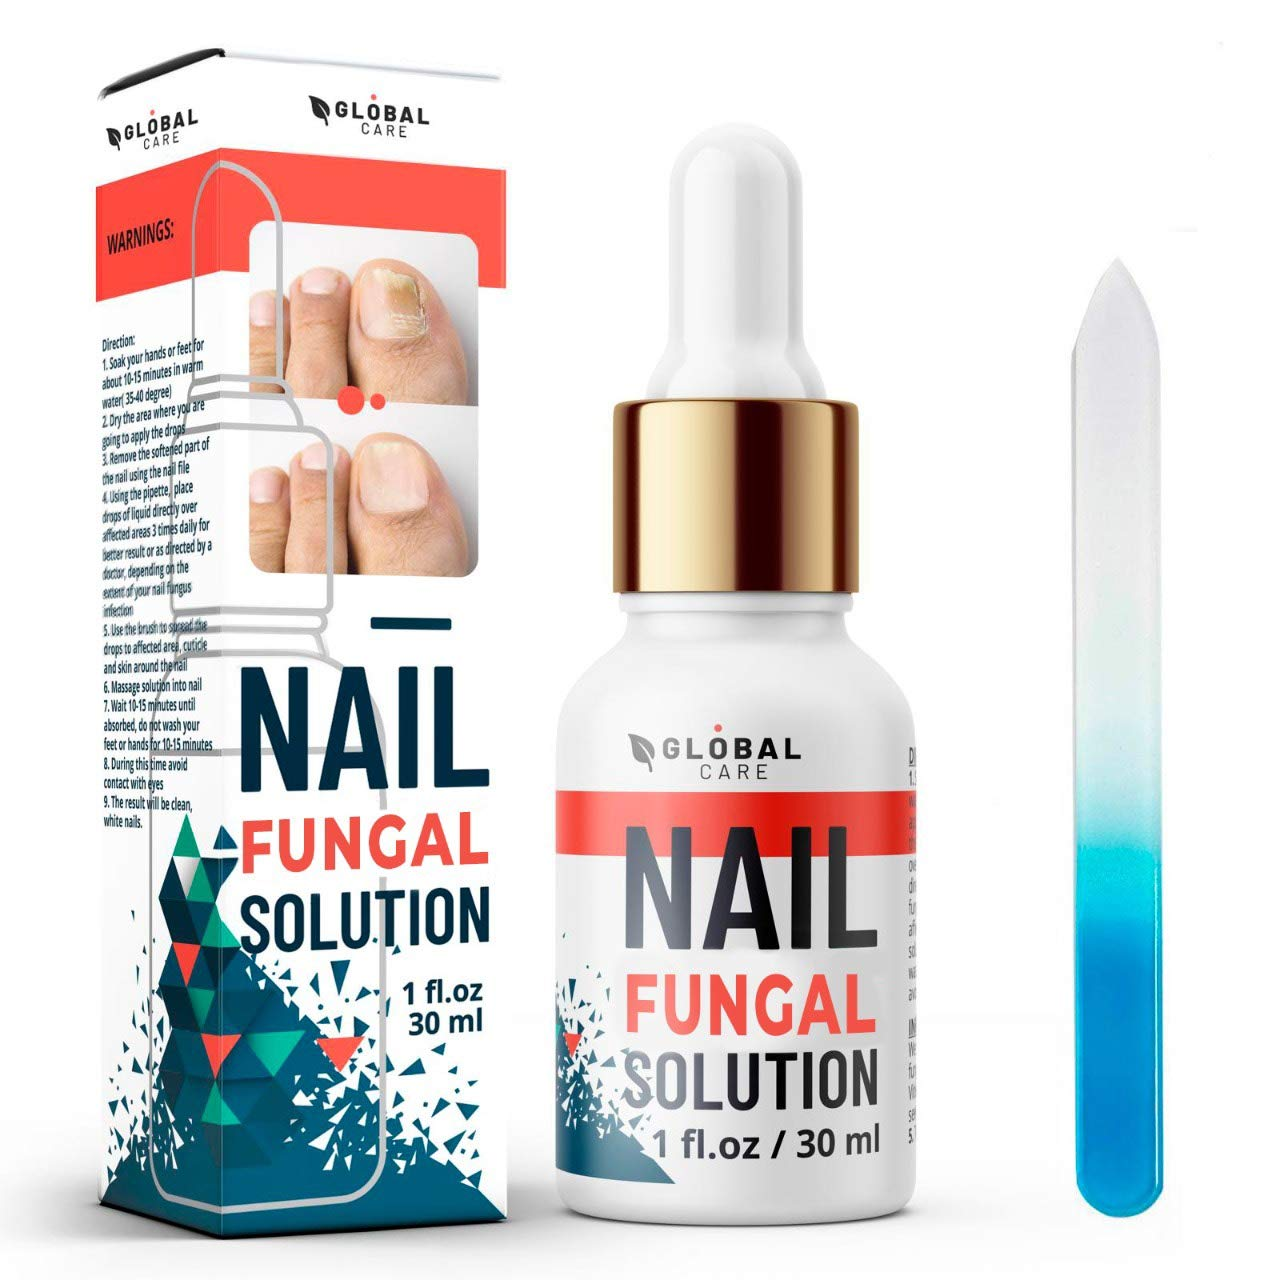 Premium Nail Care Solution by Global Care, Suitable for Finger and Toe nail | Contains Argan Oil and Tea Tree Oil | 30ml | Free nail file and nail brush.